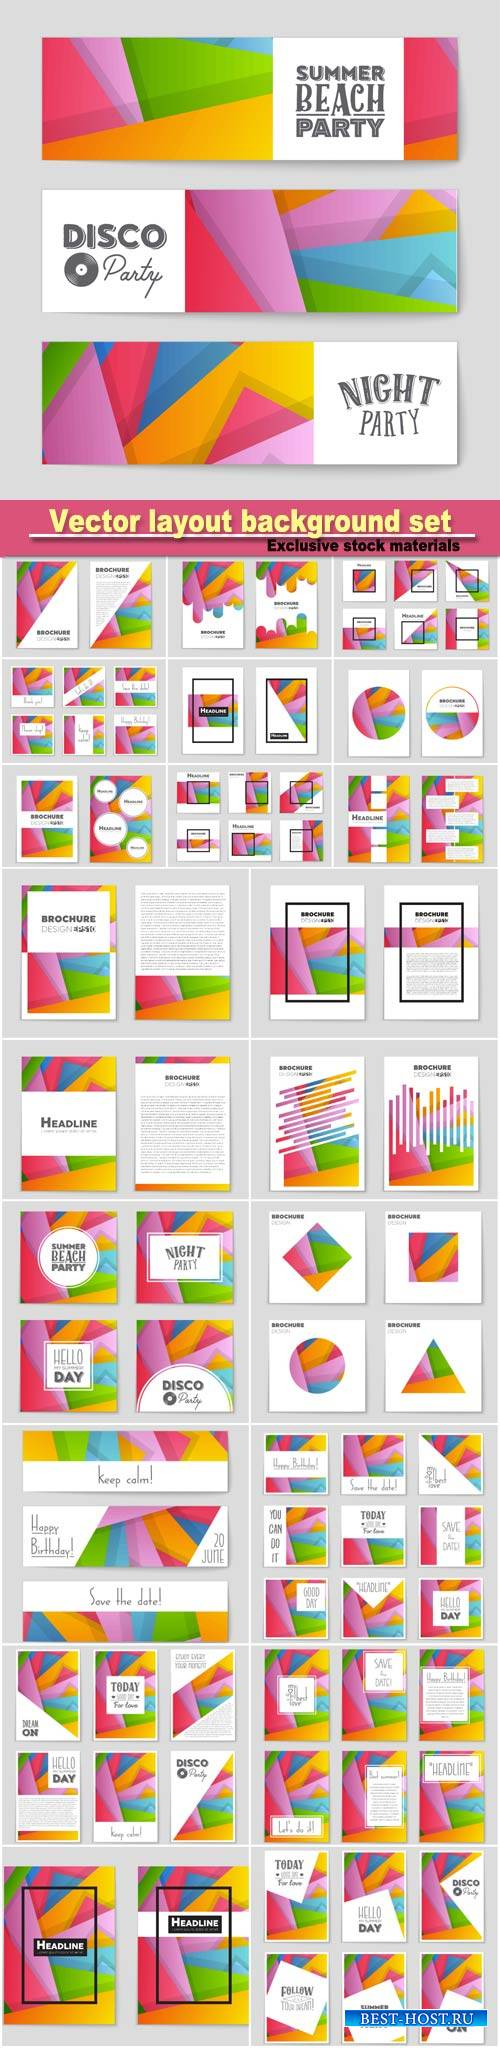 Abstract vector layout background set, art template design, list, page, moc ...